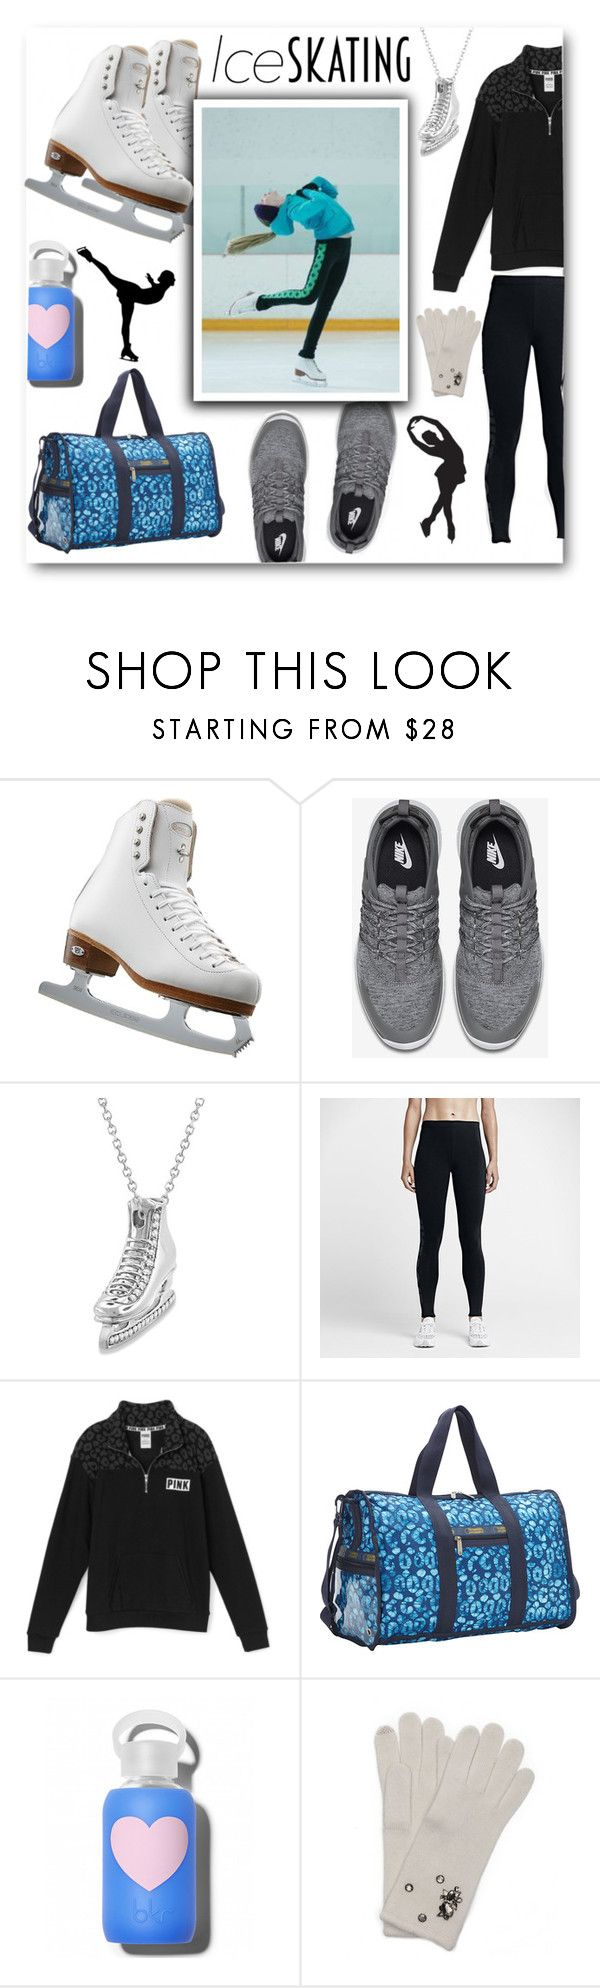 """Figure Skating Training Wear"" by voguefashion101 ❤ liked on Polyvore featuring Riedell, NIKE, Allurez, LeSportsac, bkr and Wyatt"